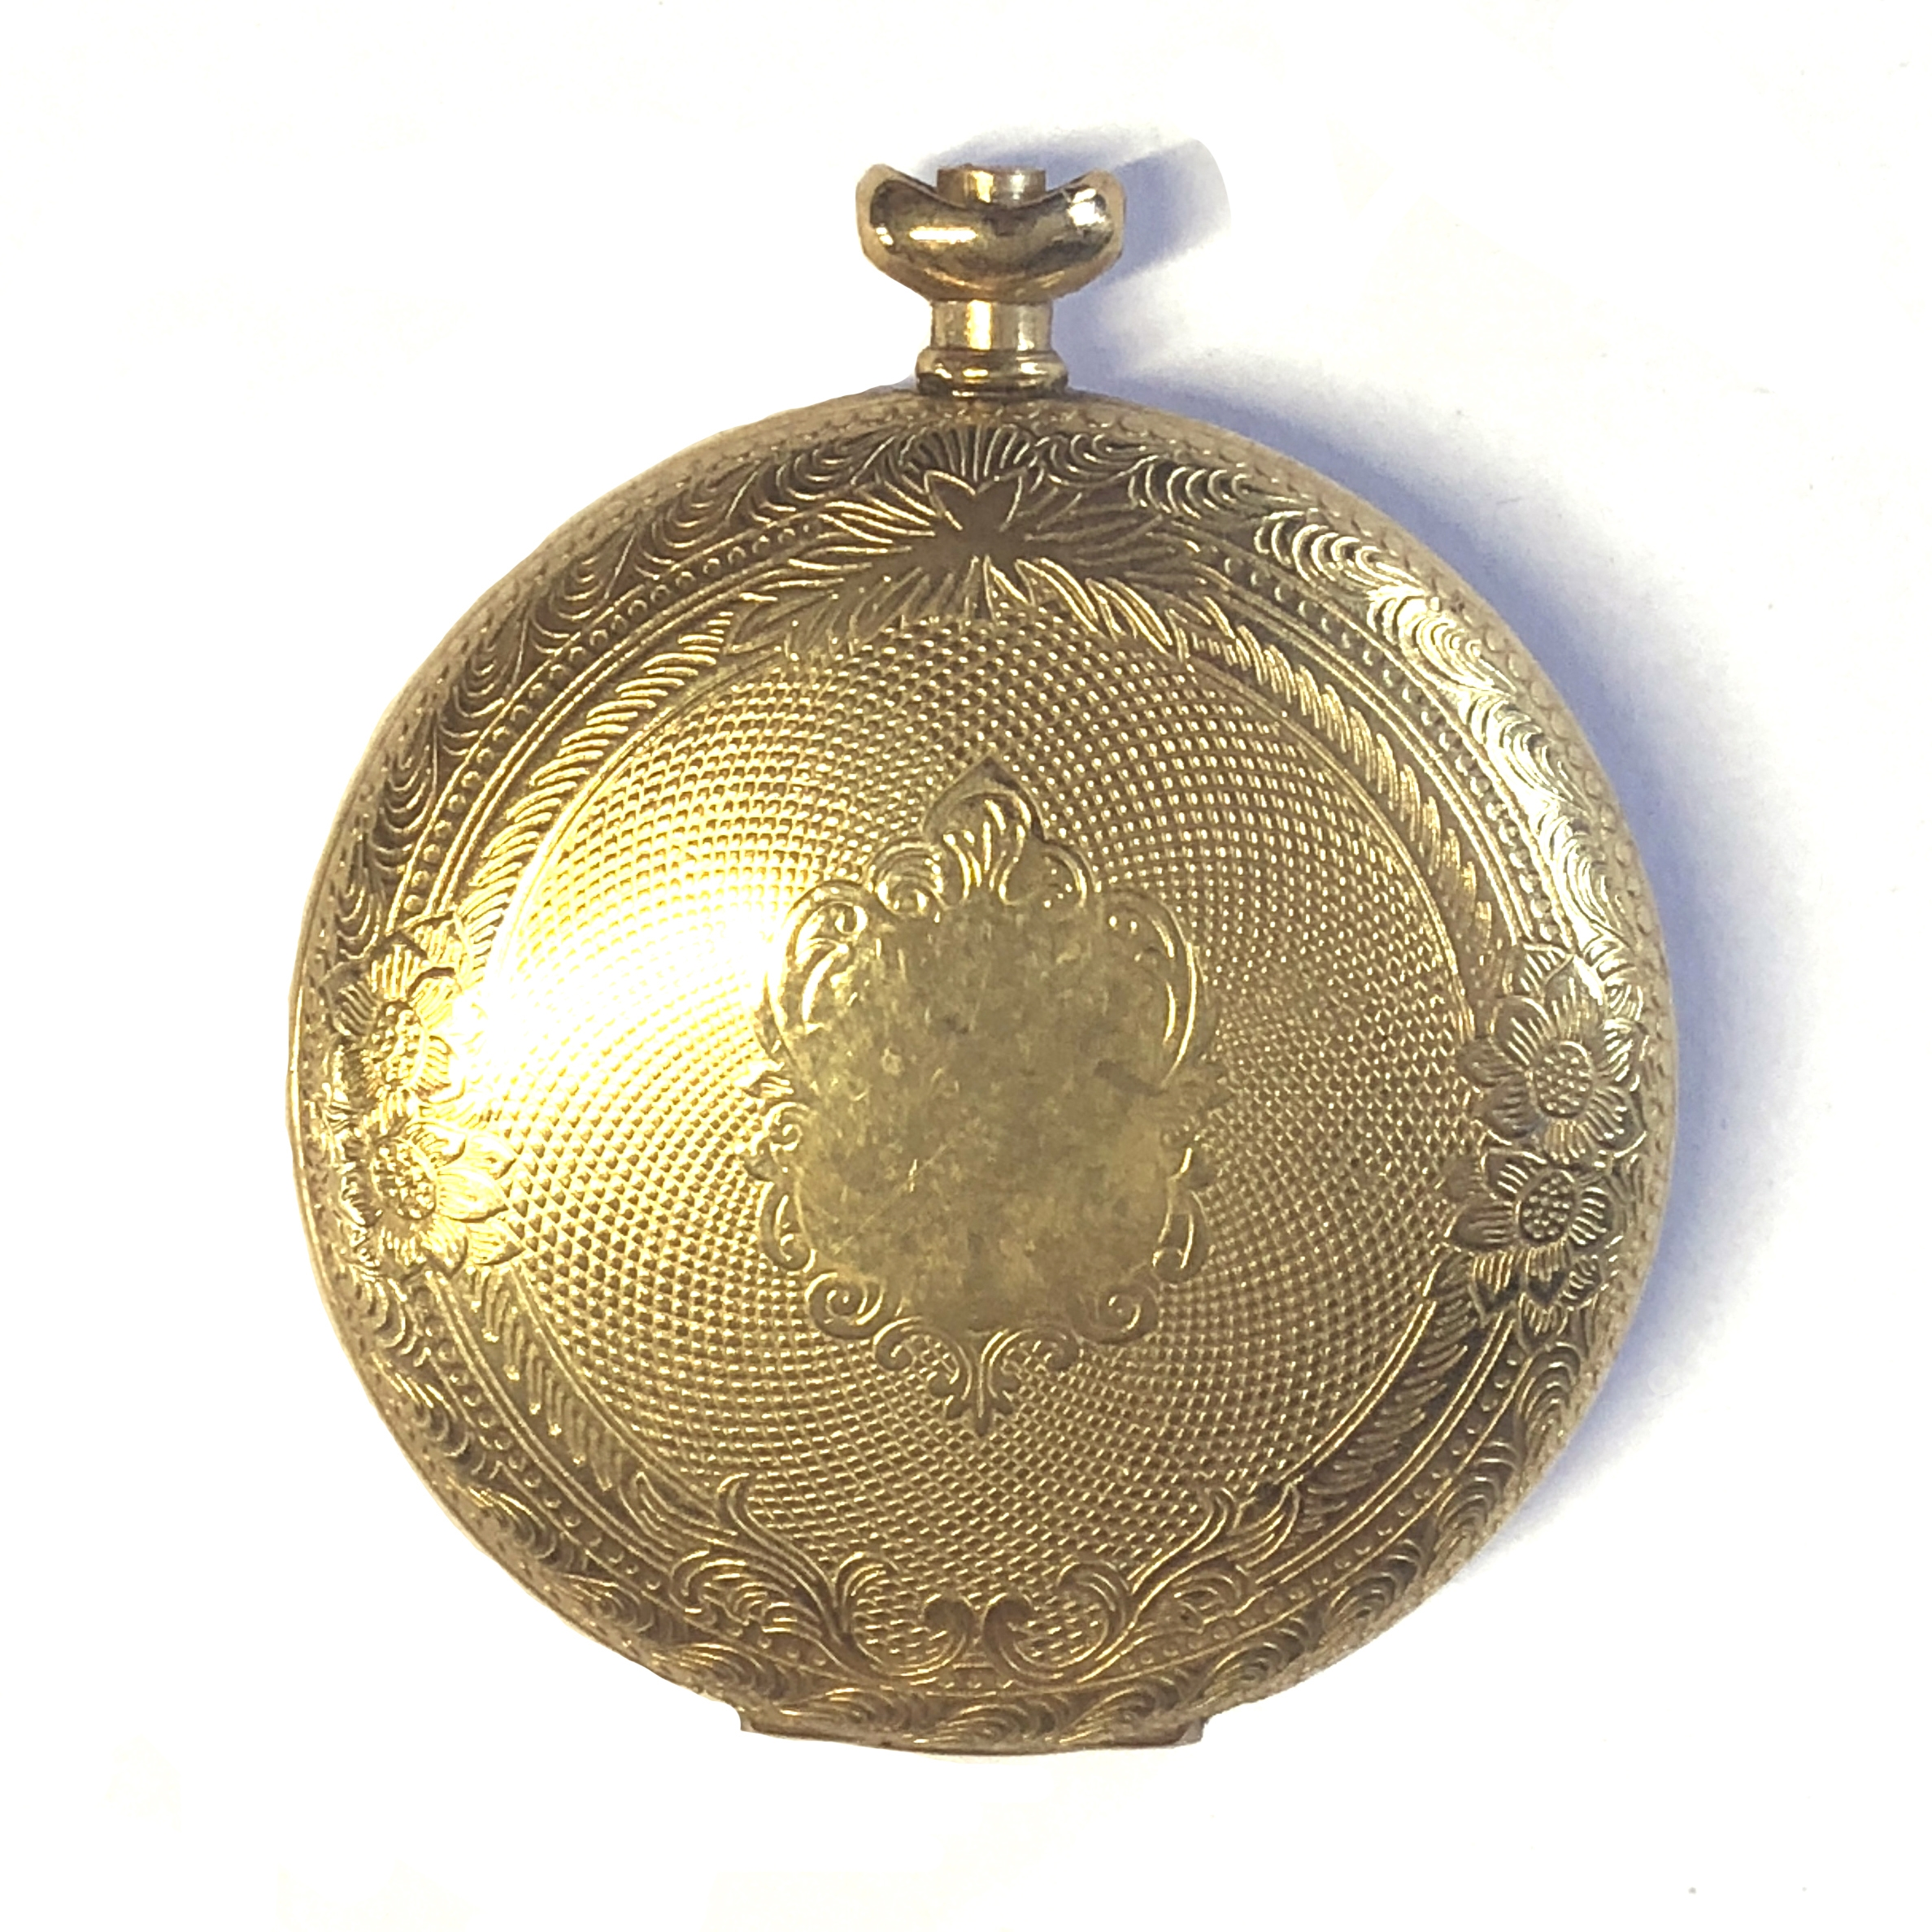 1928 pocket watch case, locket, 09256, gold plated, 43mm, floral design, vintage watch parts, watch parts, vintage jewelry supplies, jewelry making, B'sue Boutiques, 1928, gold, bezel, watch case